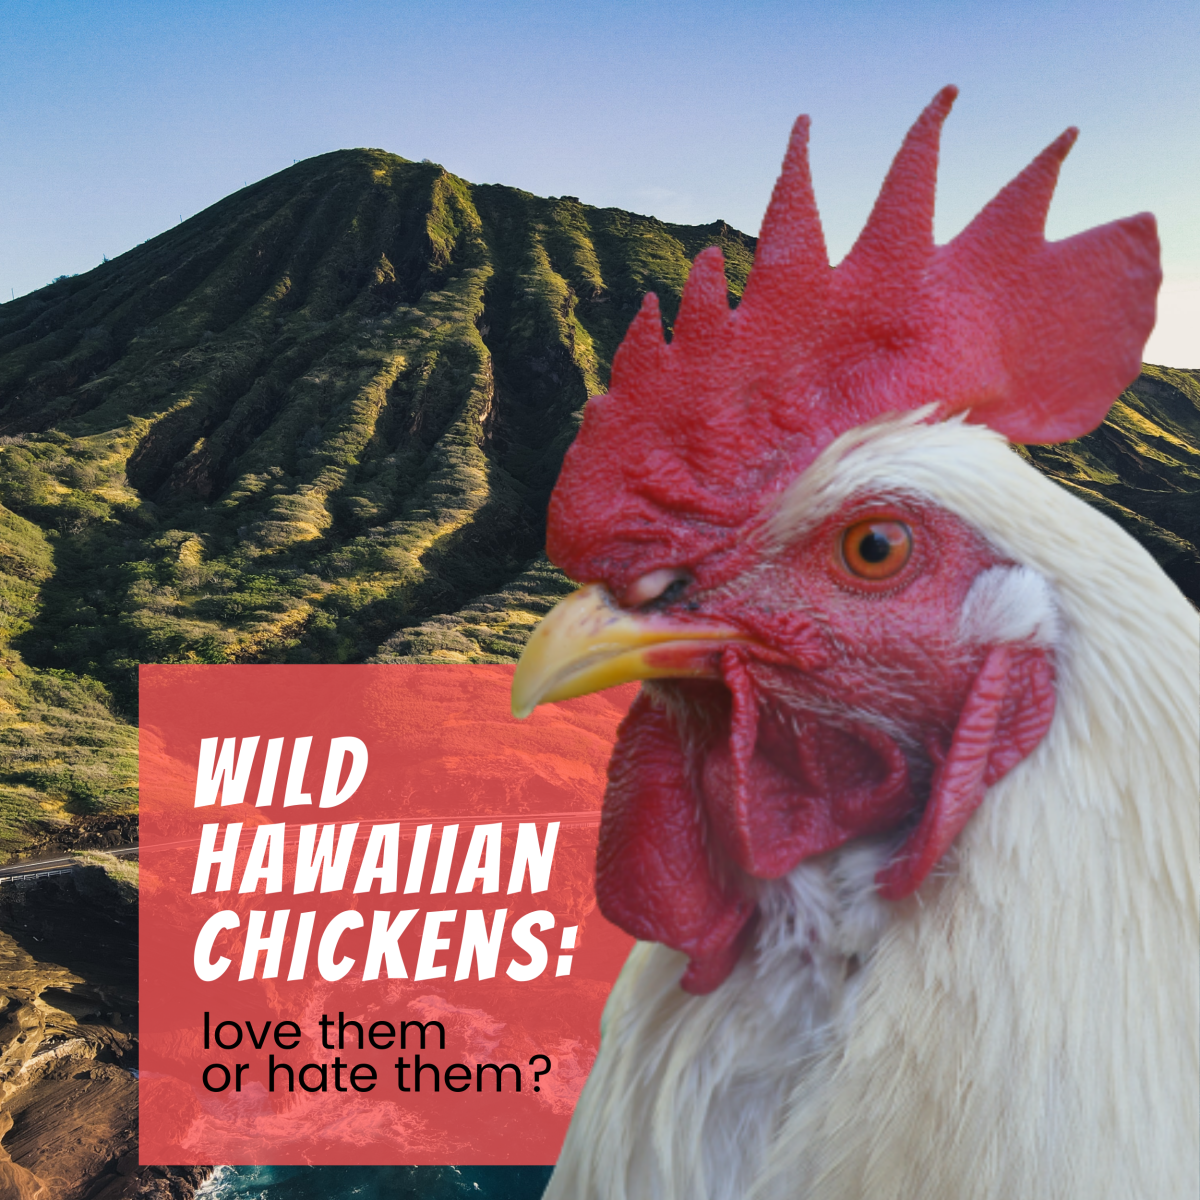 Roosters on Oahu: Love Them or Hate Them?